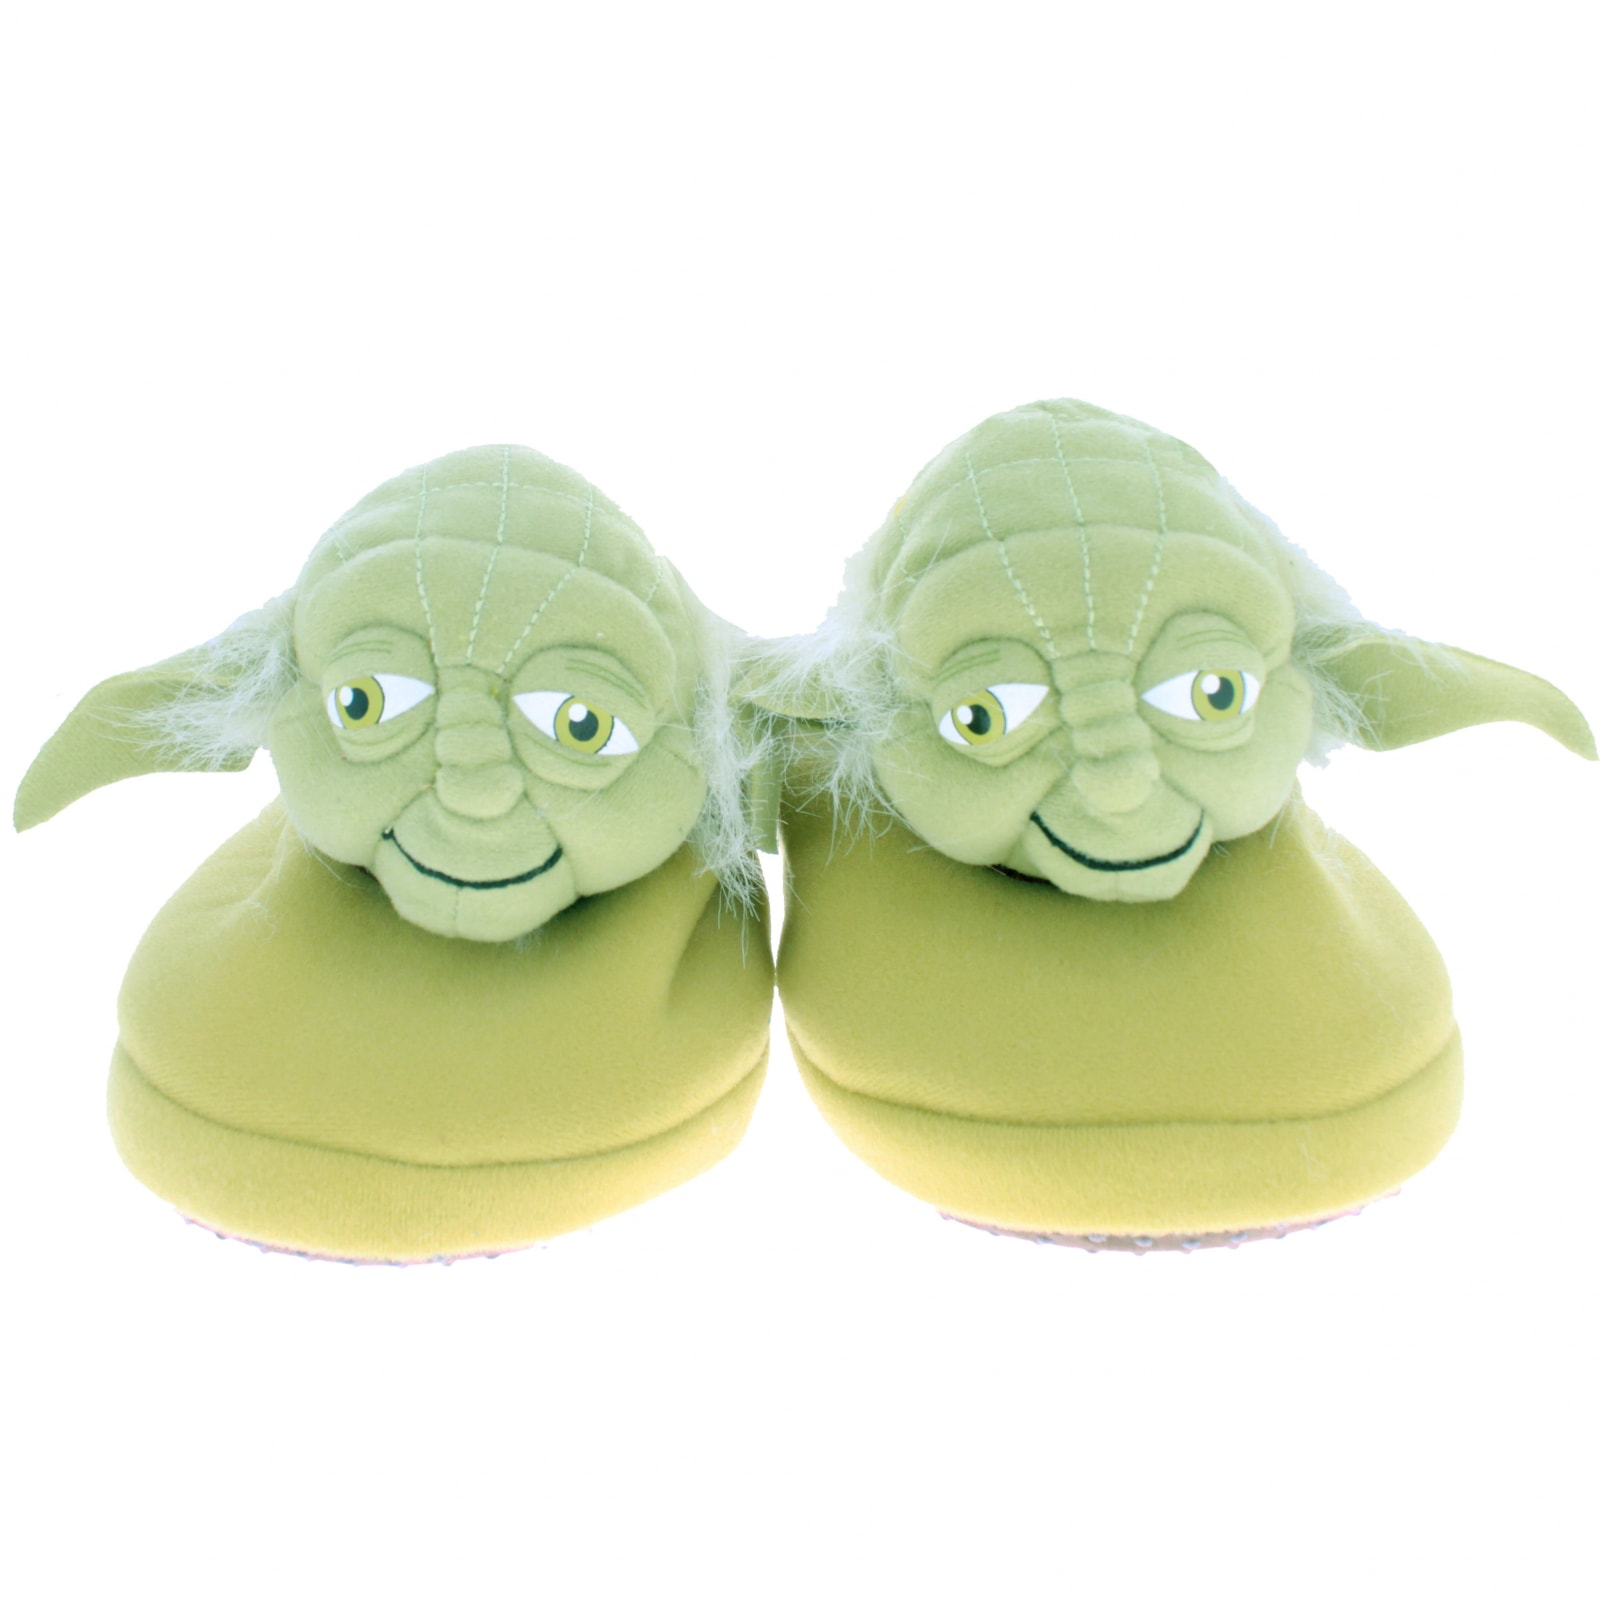 Star Wars Yoda Slippers - Large